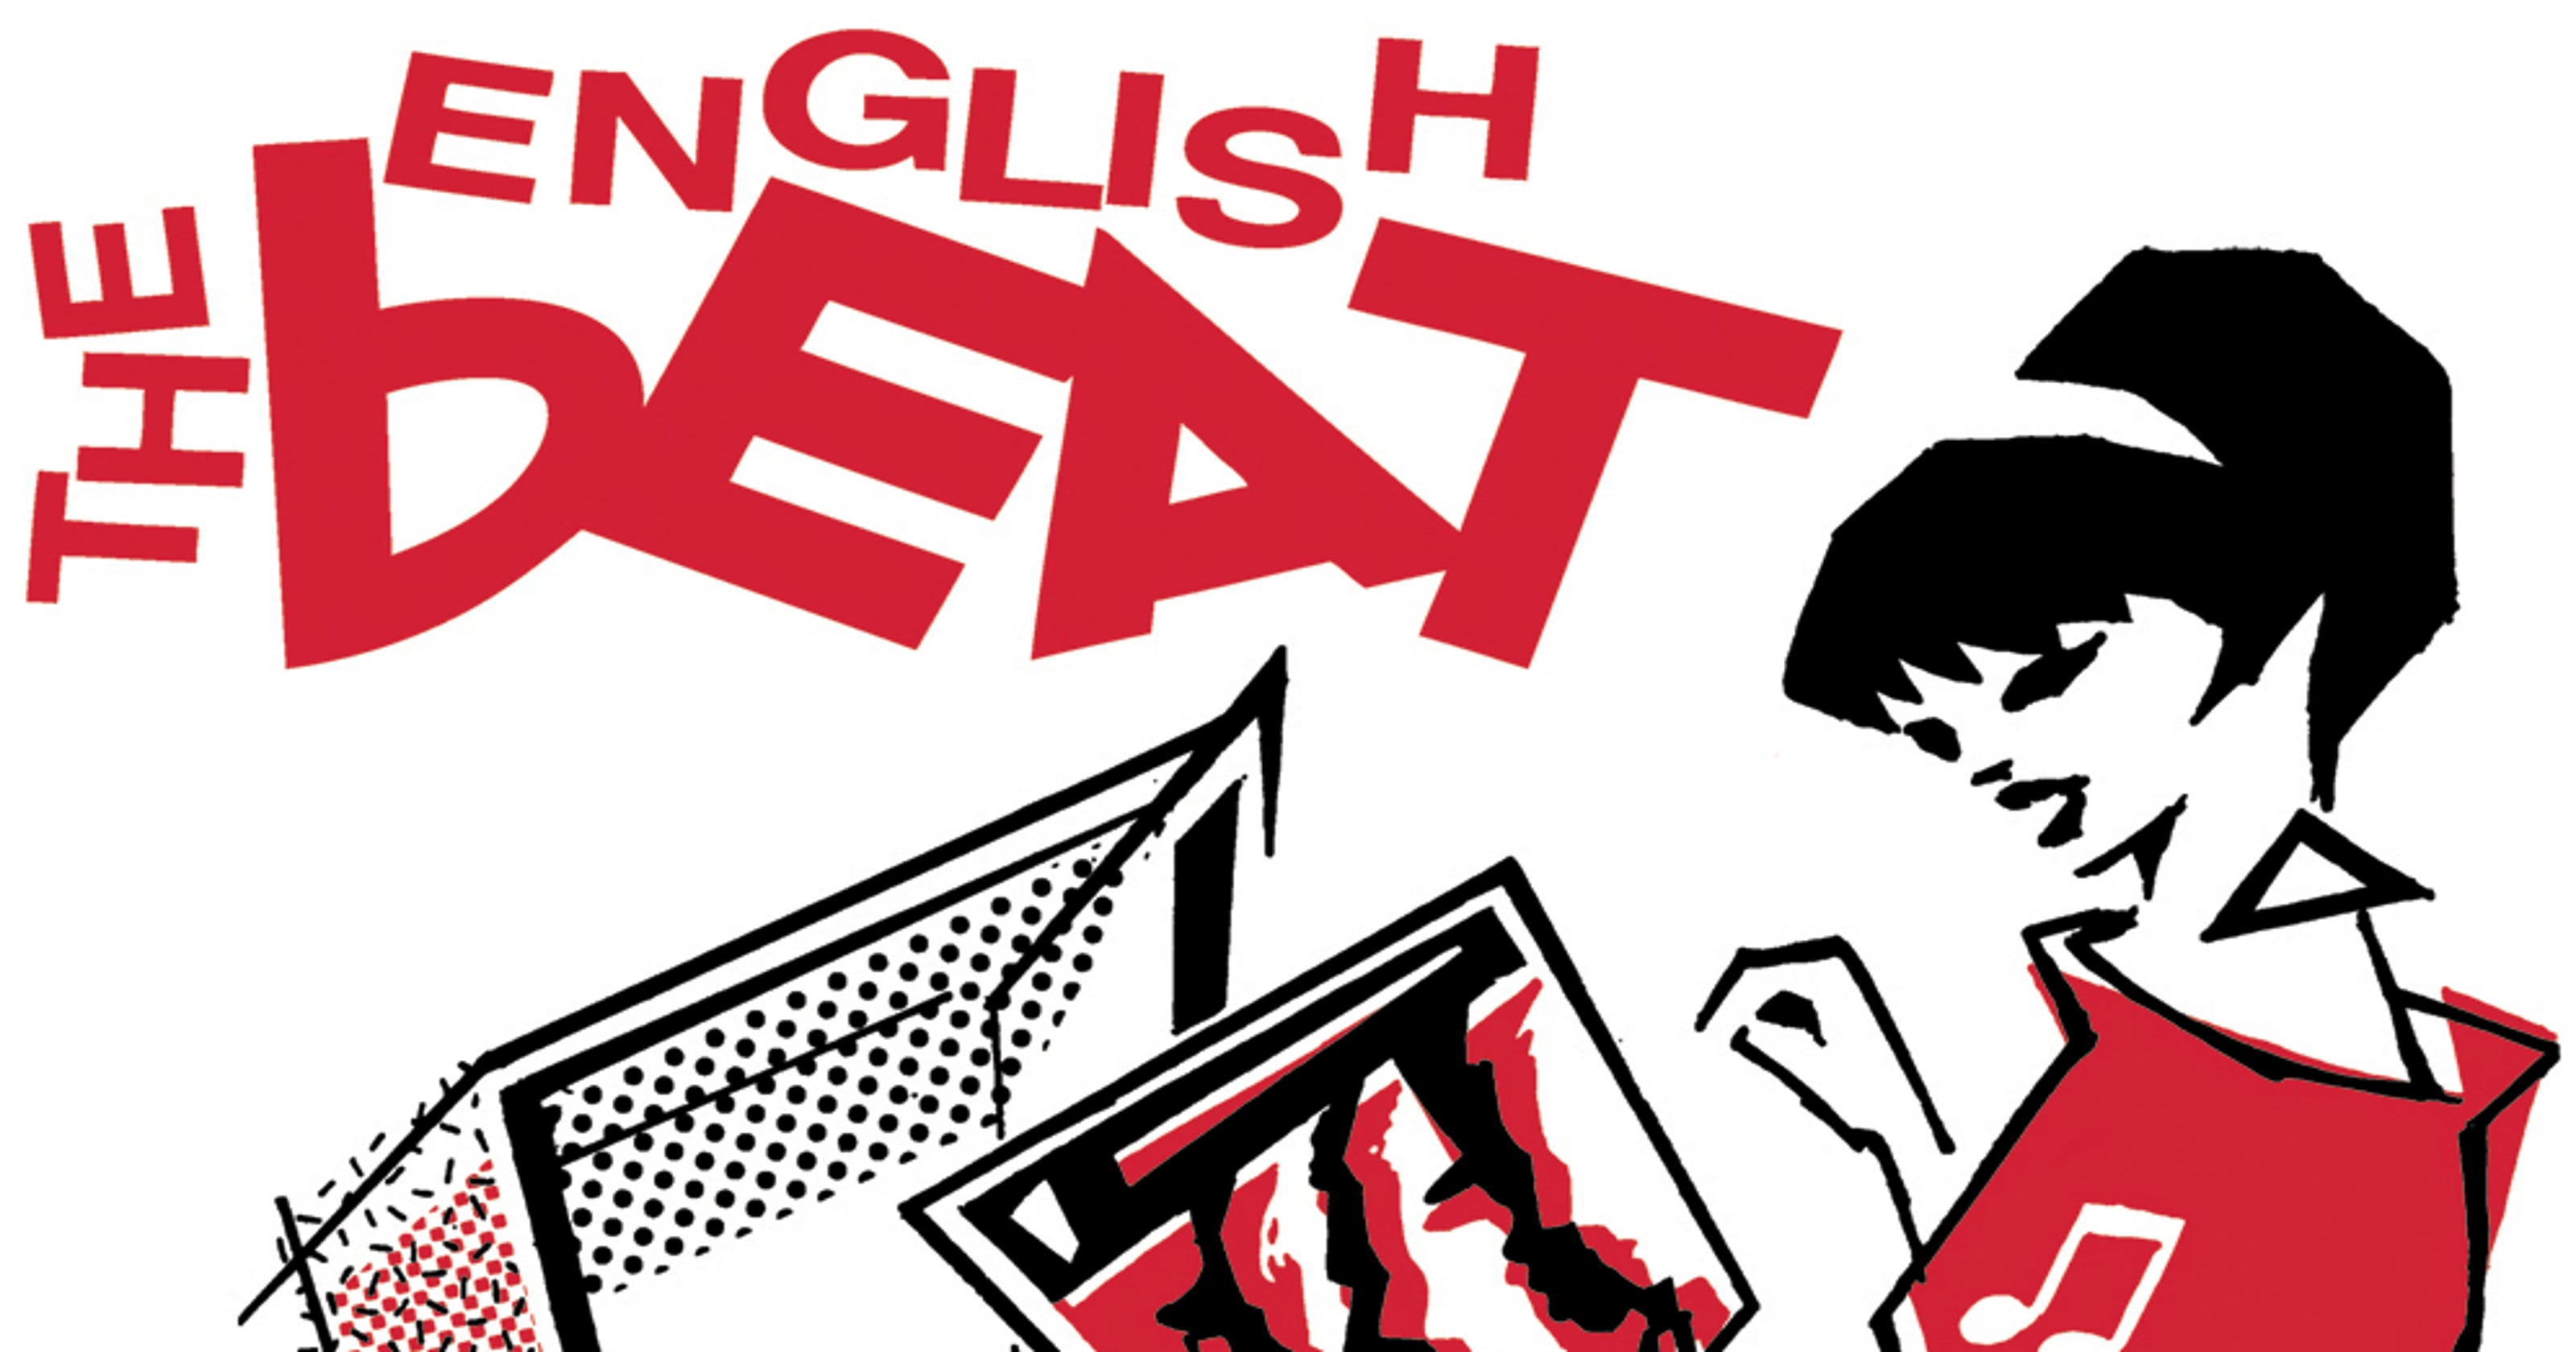 Dad Rock podcast: The English Beat goes on